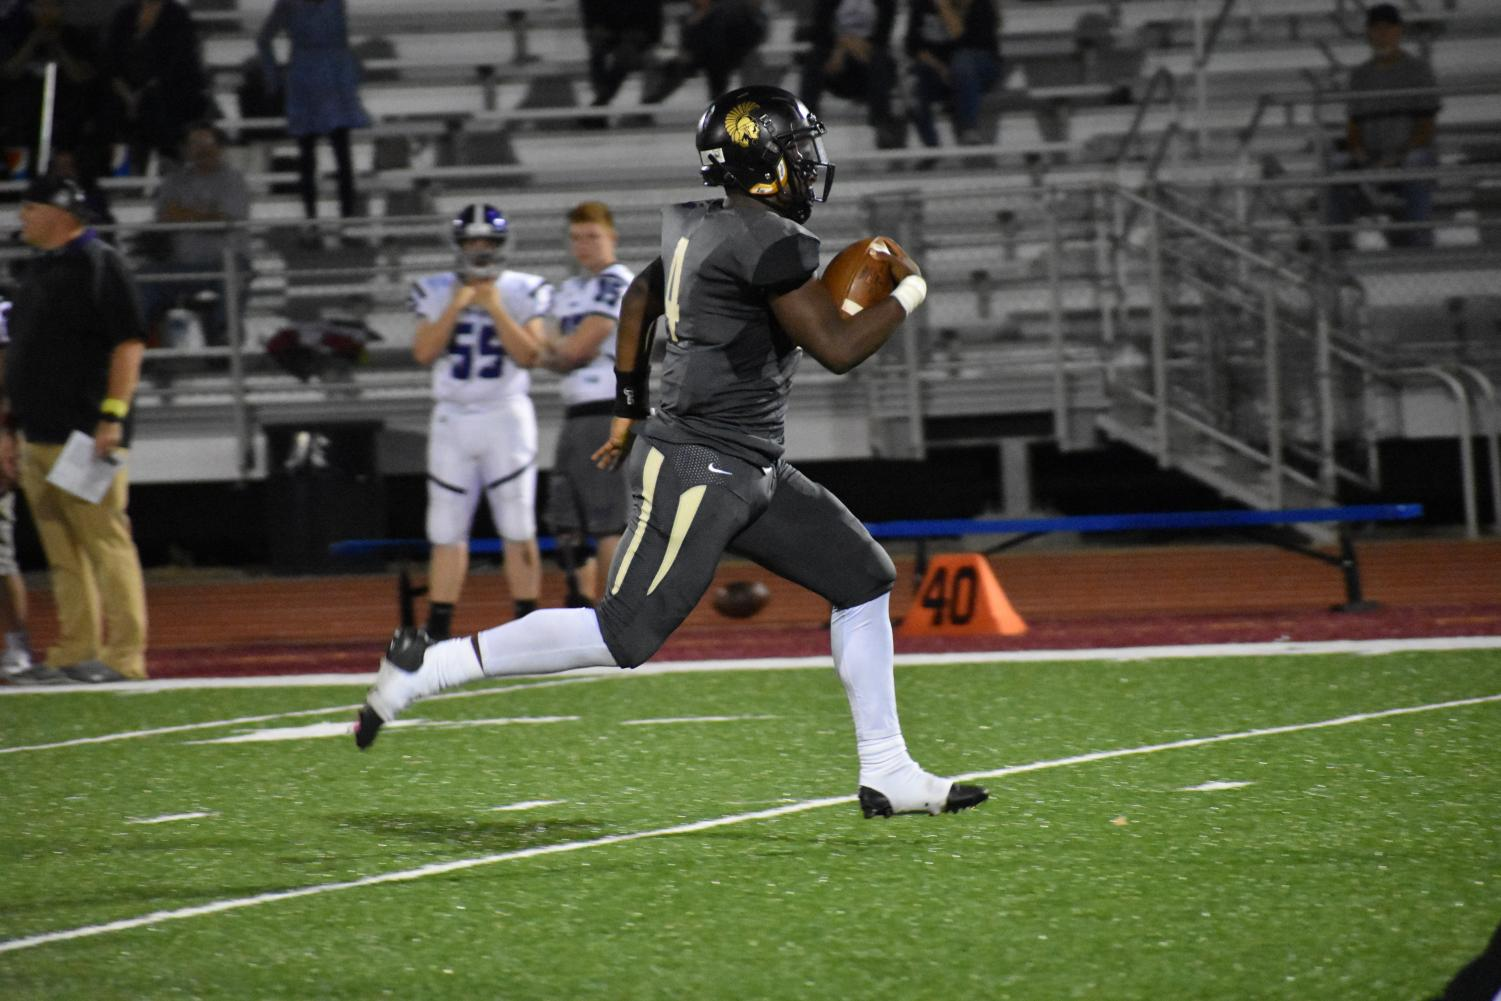 Jacquez+Barksdale%2C+senior%2C+runs+the+ball+down+the+field+to+score+a+touchdown+against+Topeka+West.